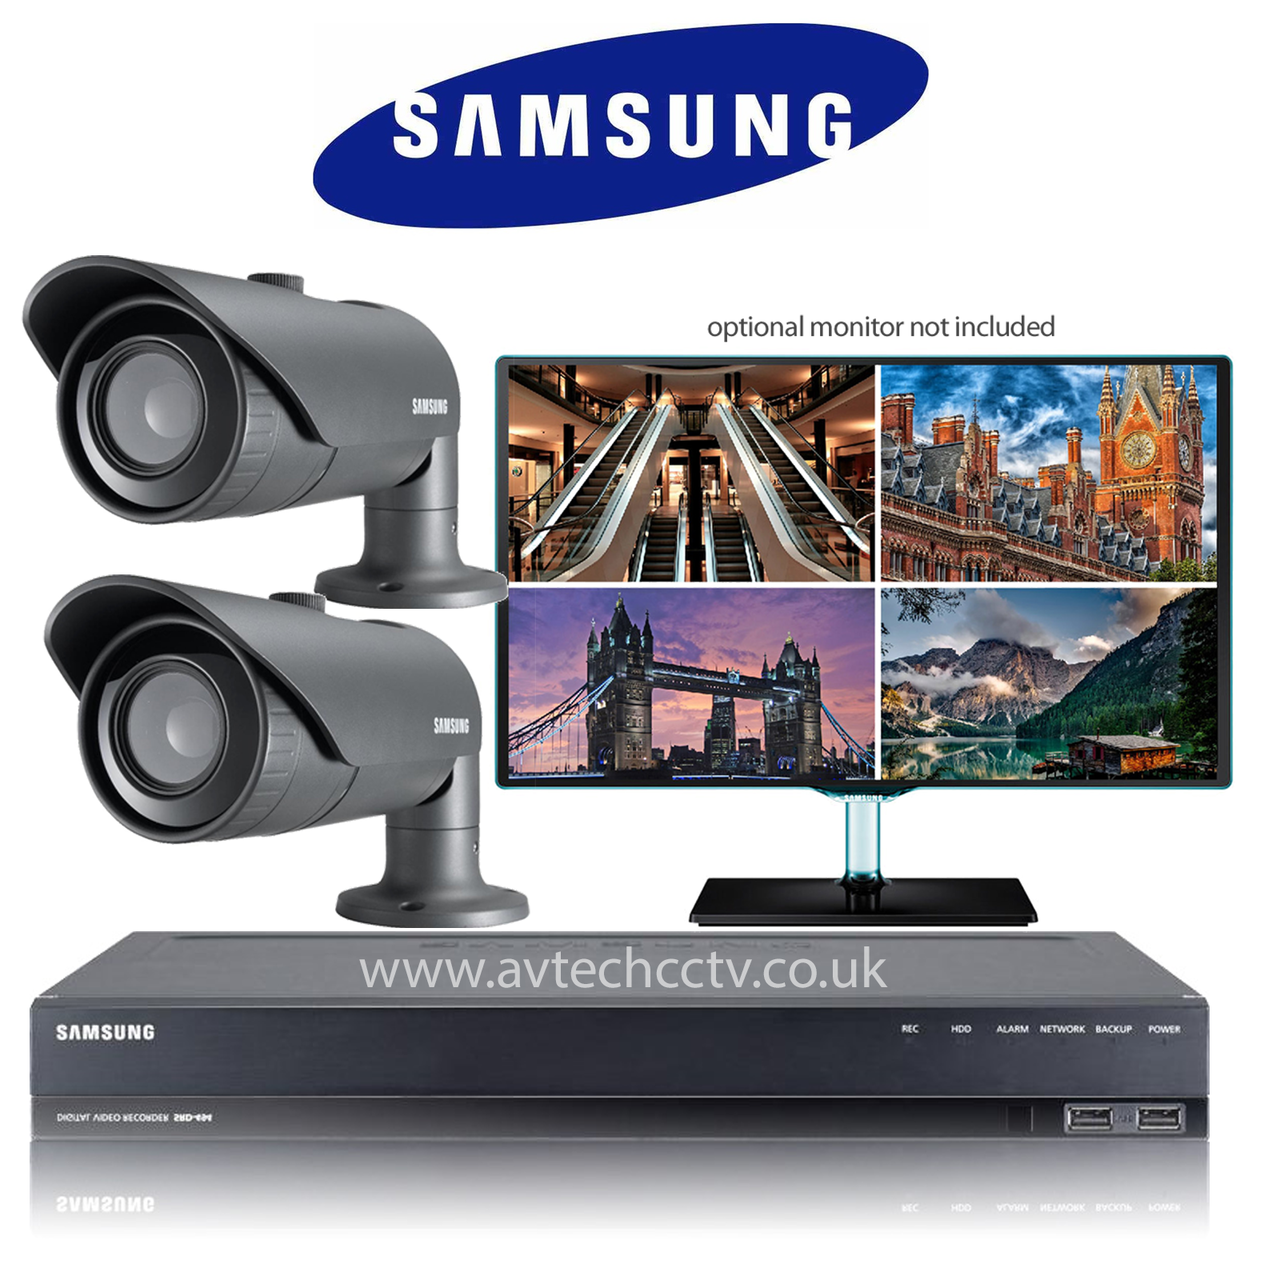 2 samsung cctv wisenet hd security camera system with bullet vari lens avtech cctv. Black Bedroom Furniture Sets. Home Design Ideas